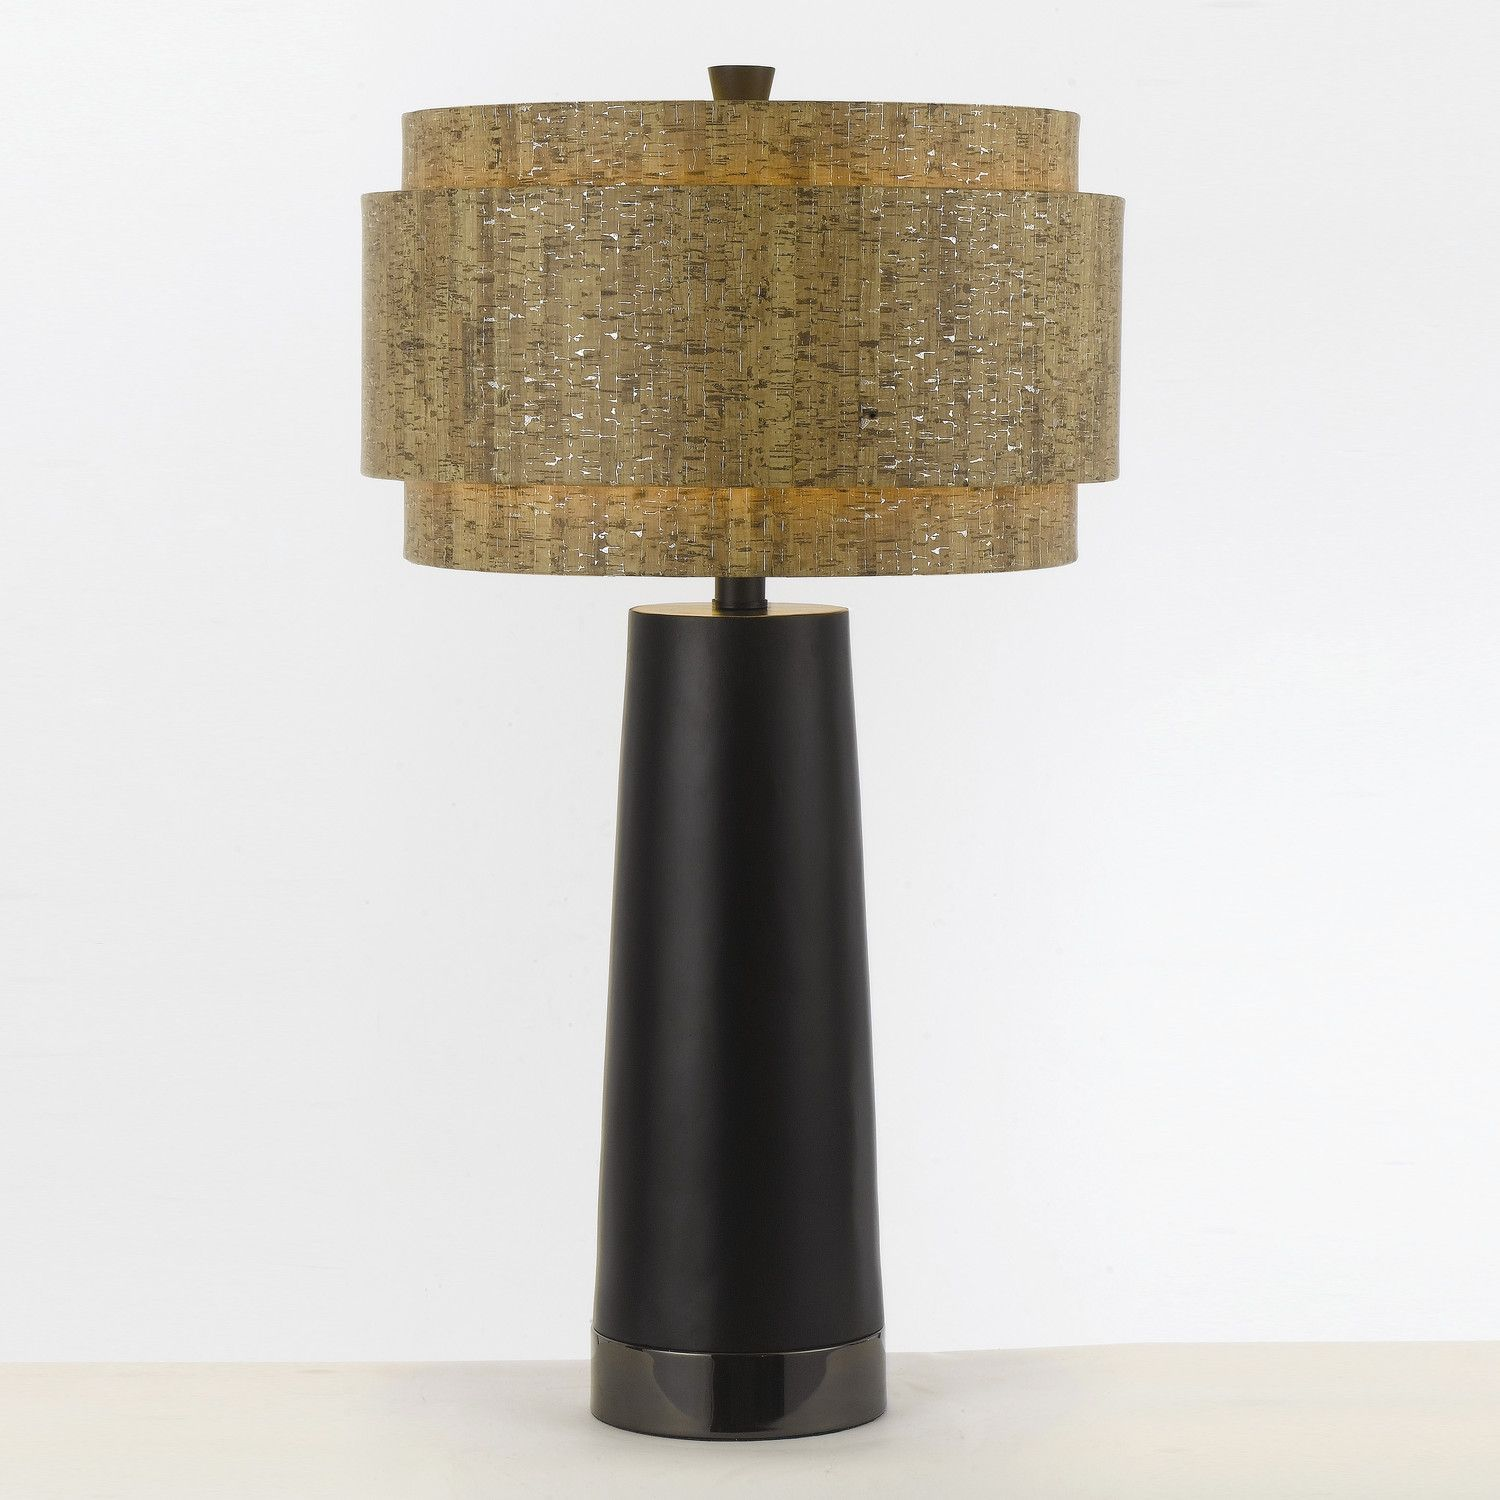 Candice olson aviva 325 h table lamp with drum shade joss candice olson aviva 325 h table lamp with drum shade joss main geotapseo Image collections